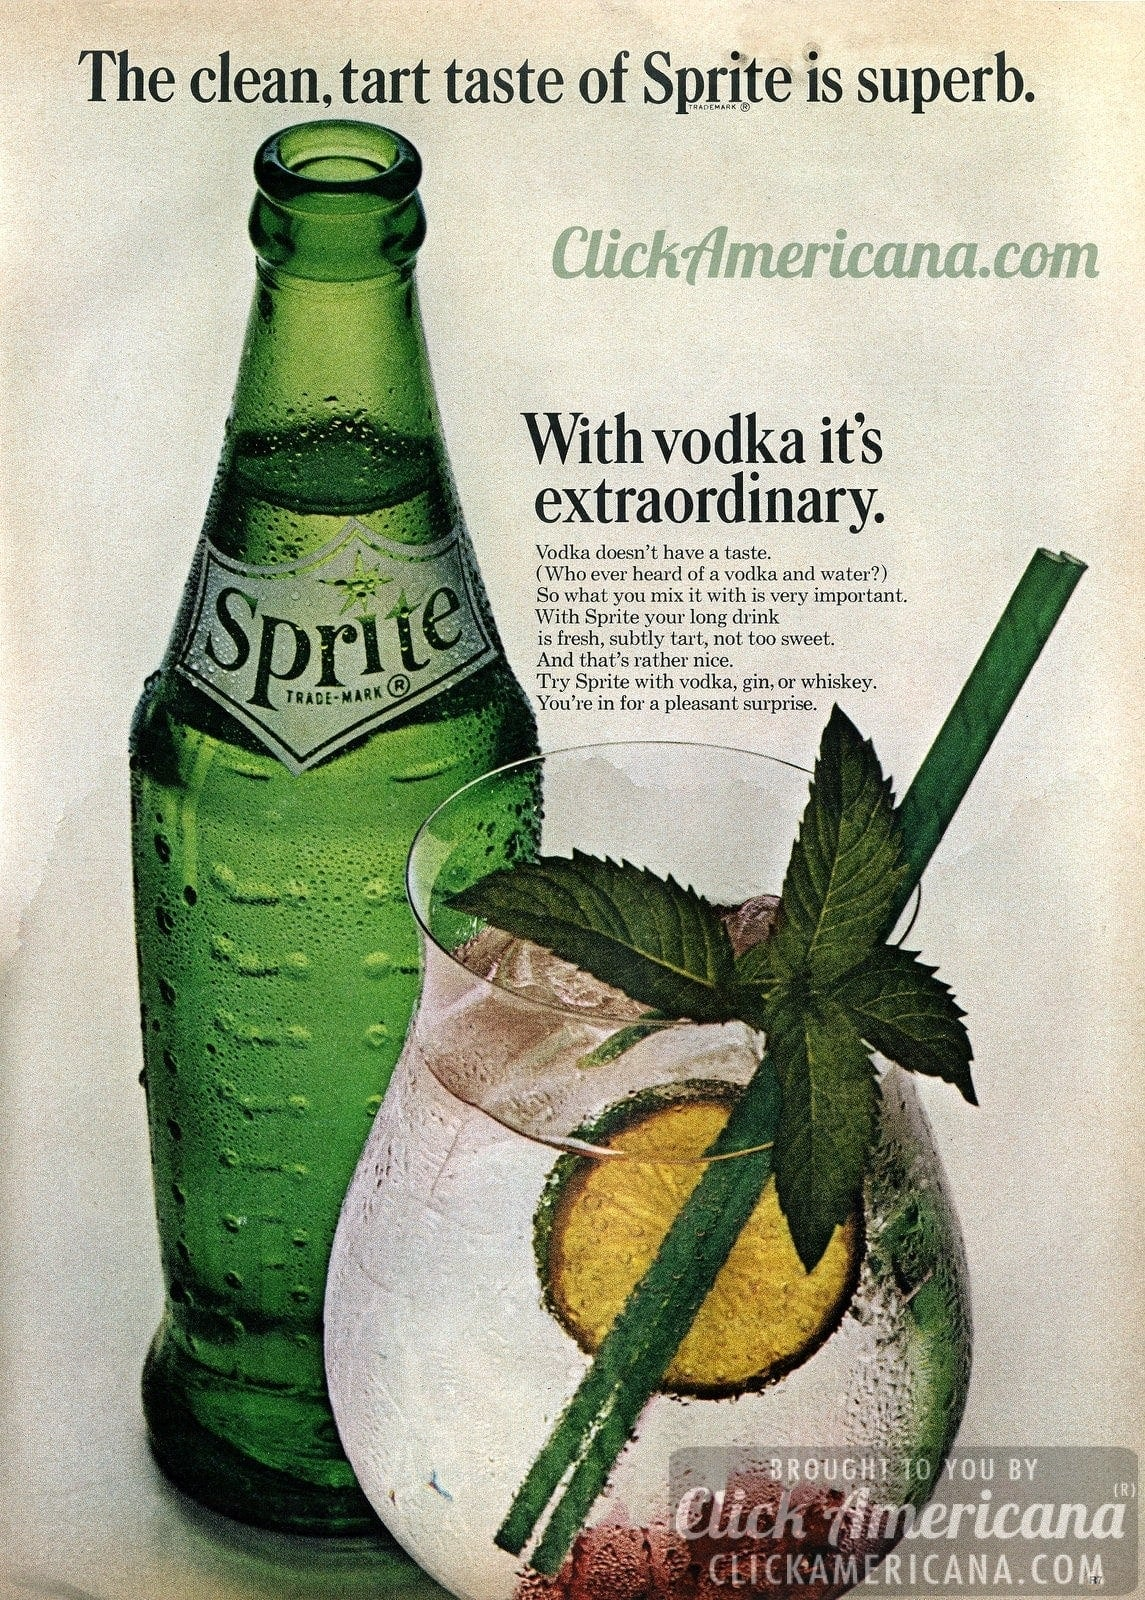 Sprite: Extraordinary with vodka (1963)